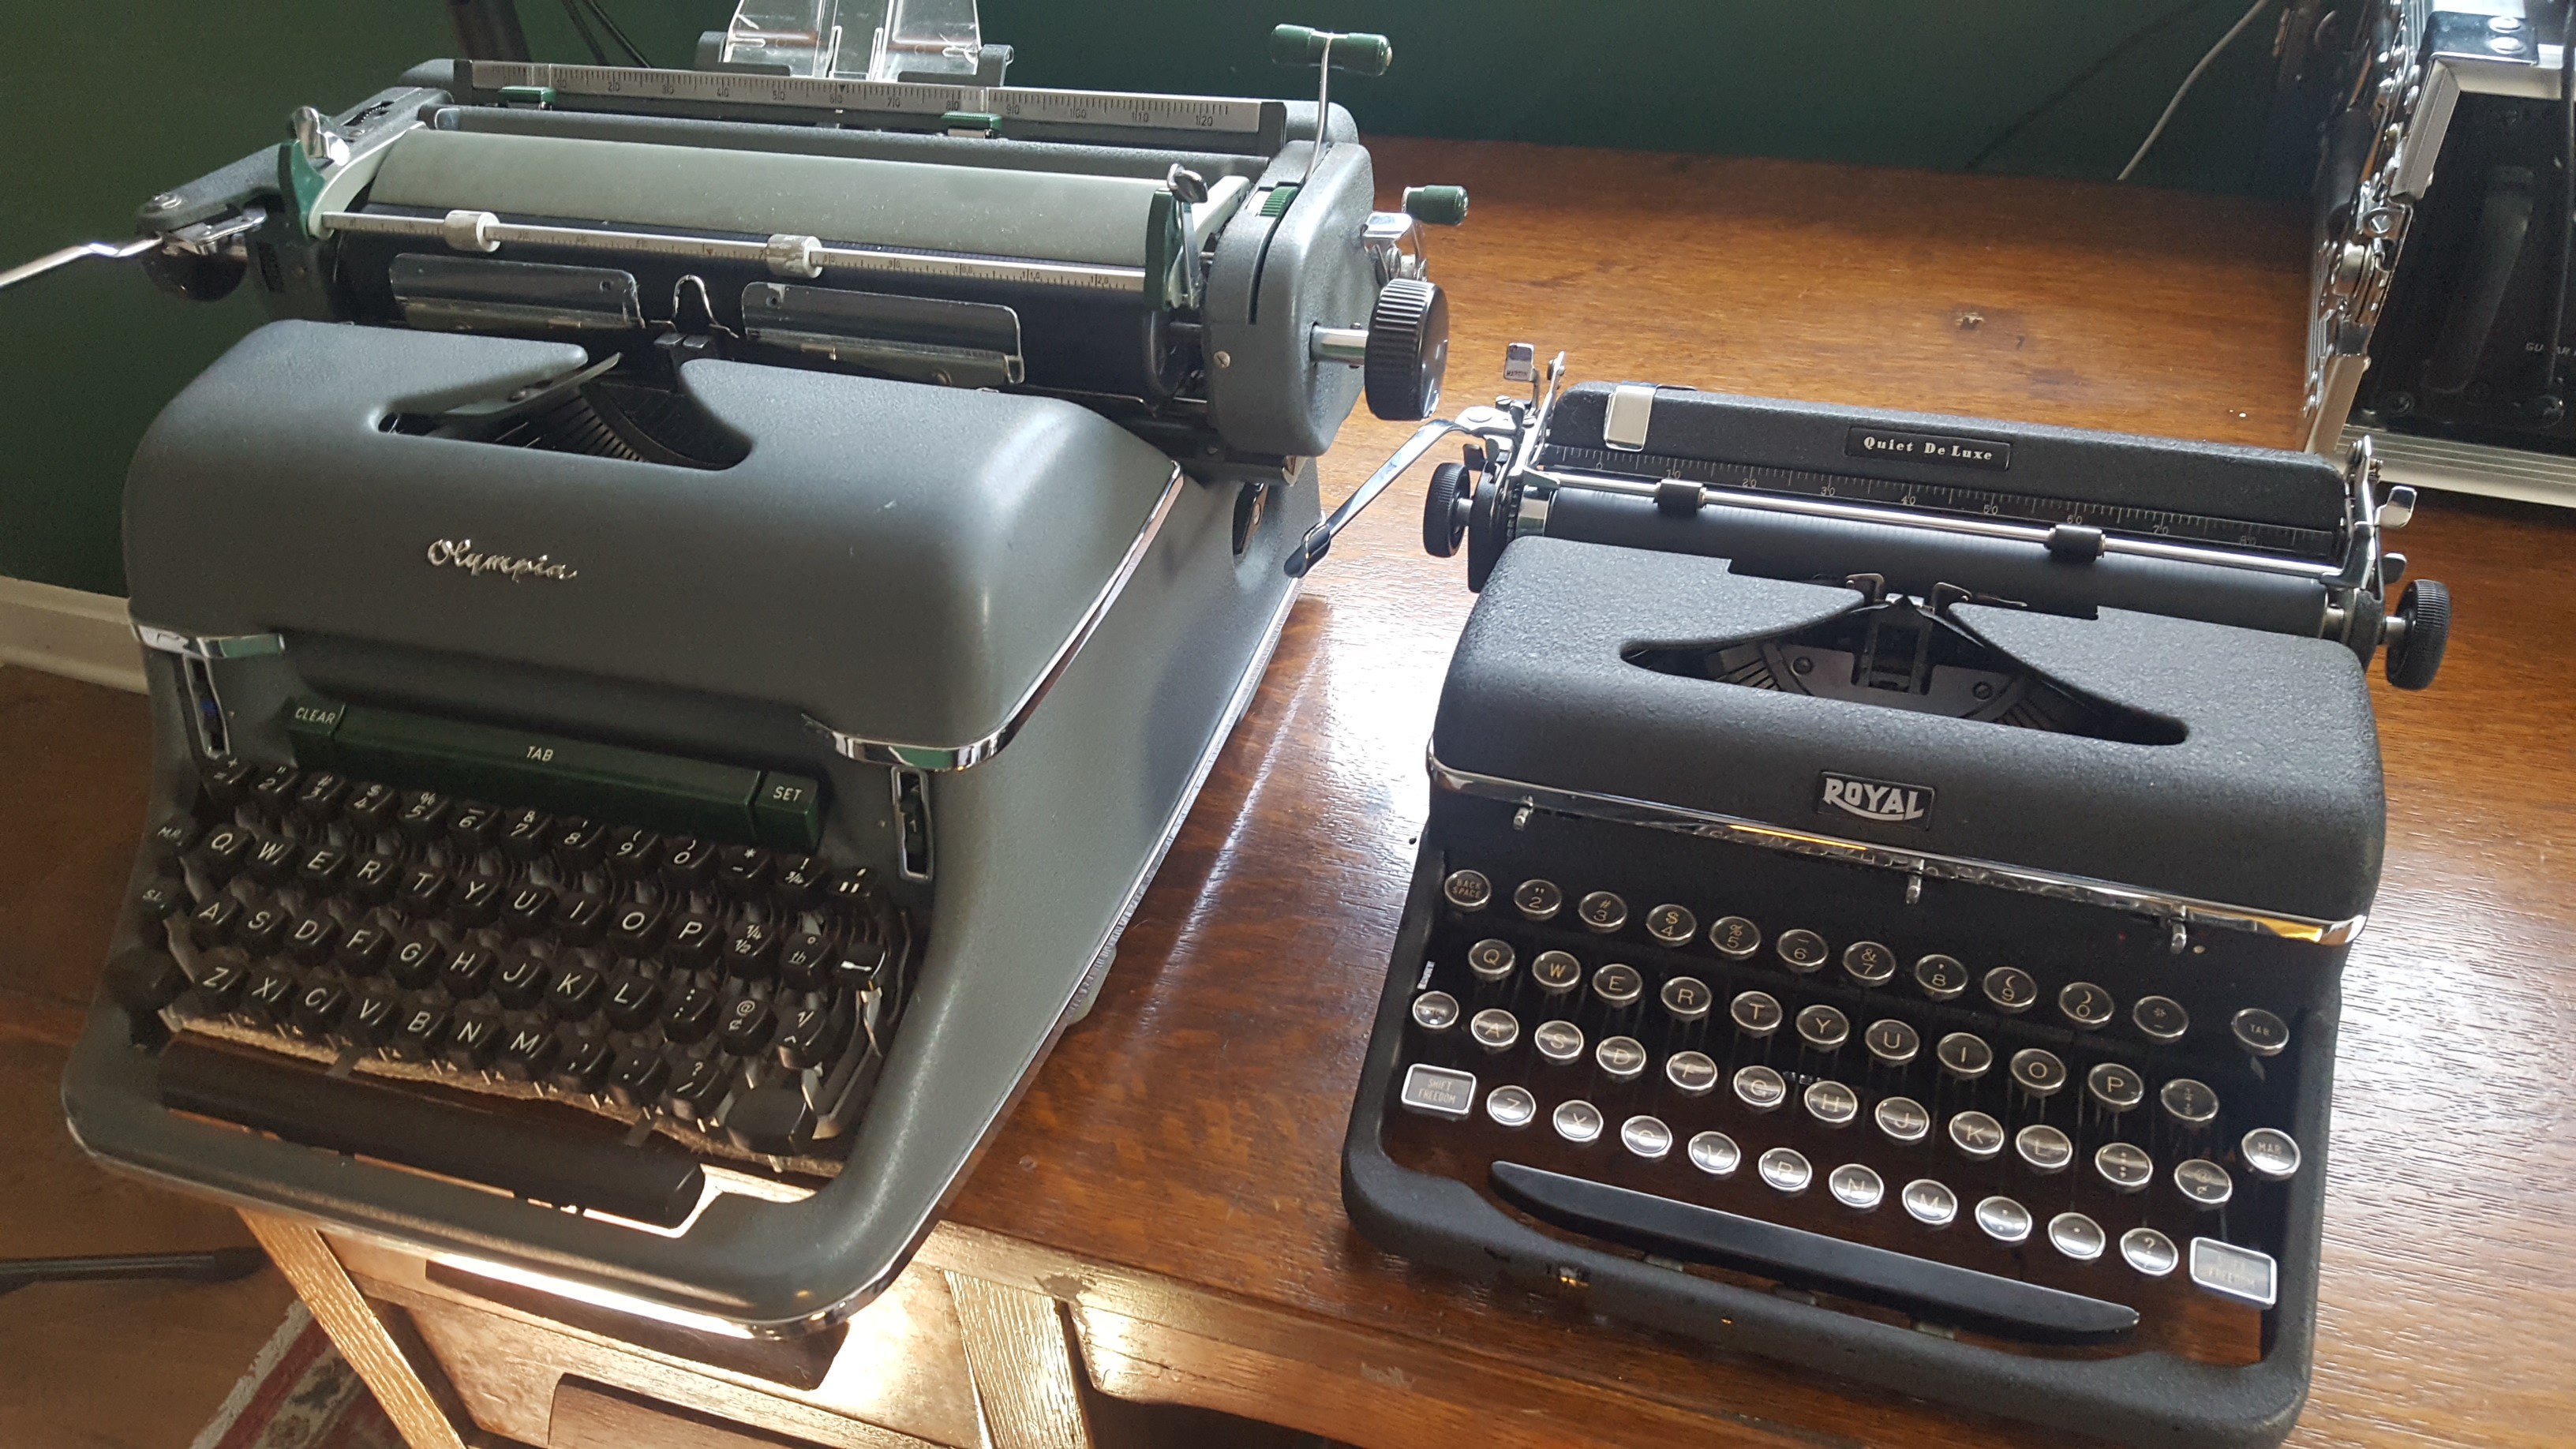 Standard vs. Portable—My Olympia SG-1 next to my Royal Quiet Deluxe